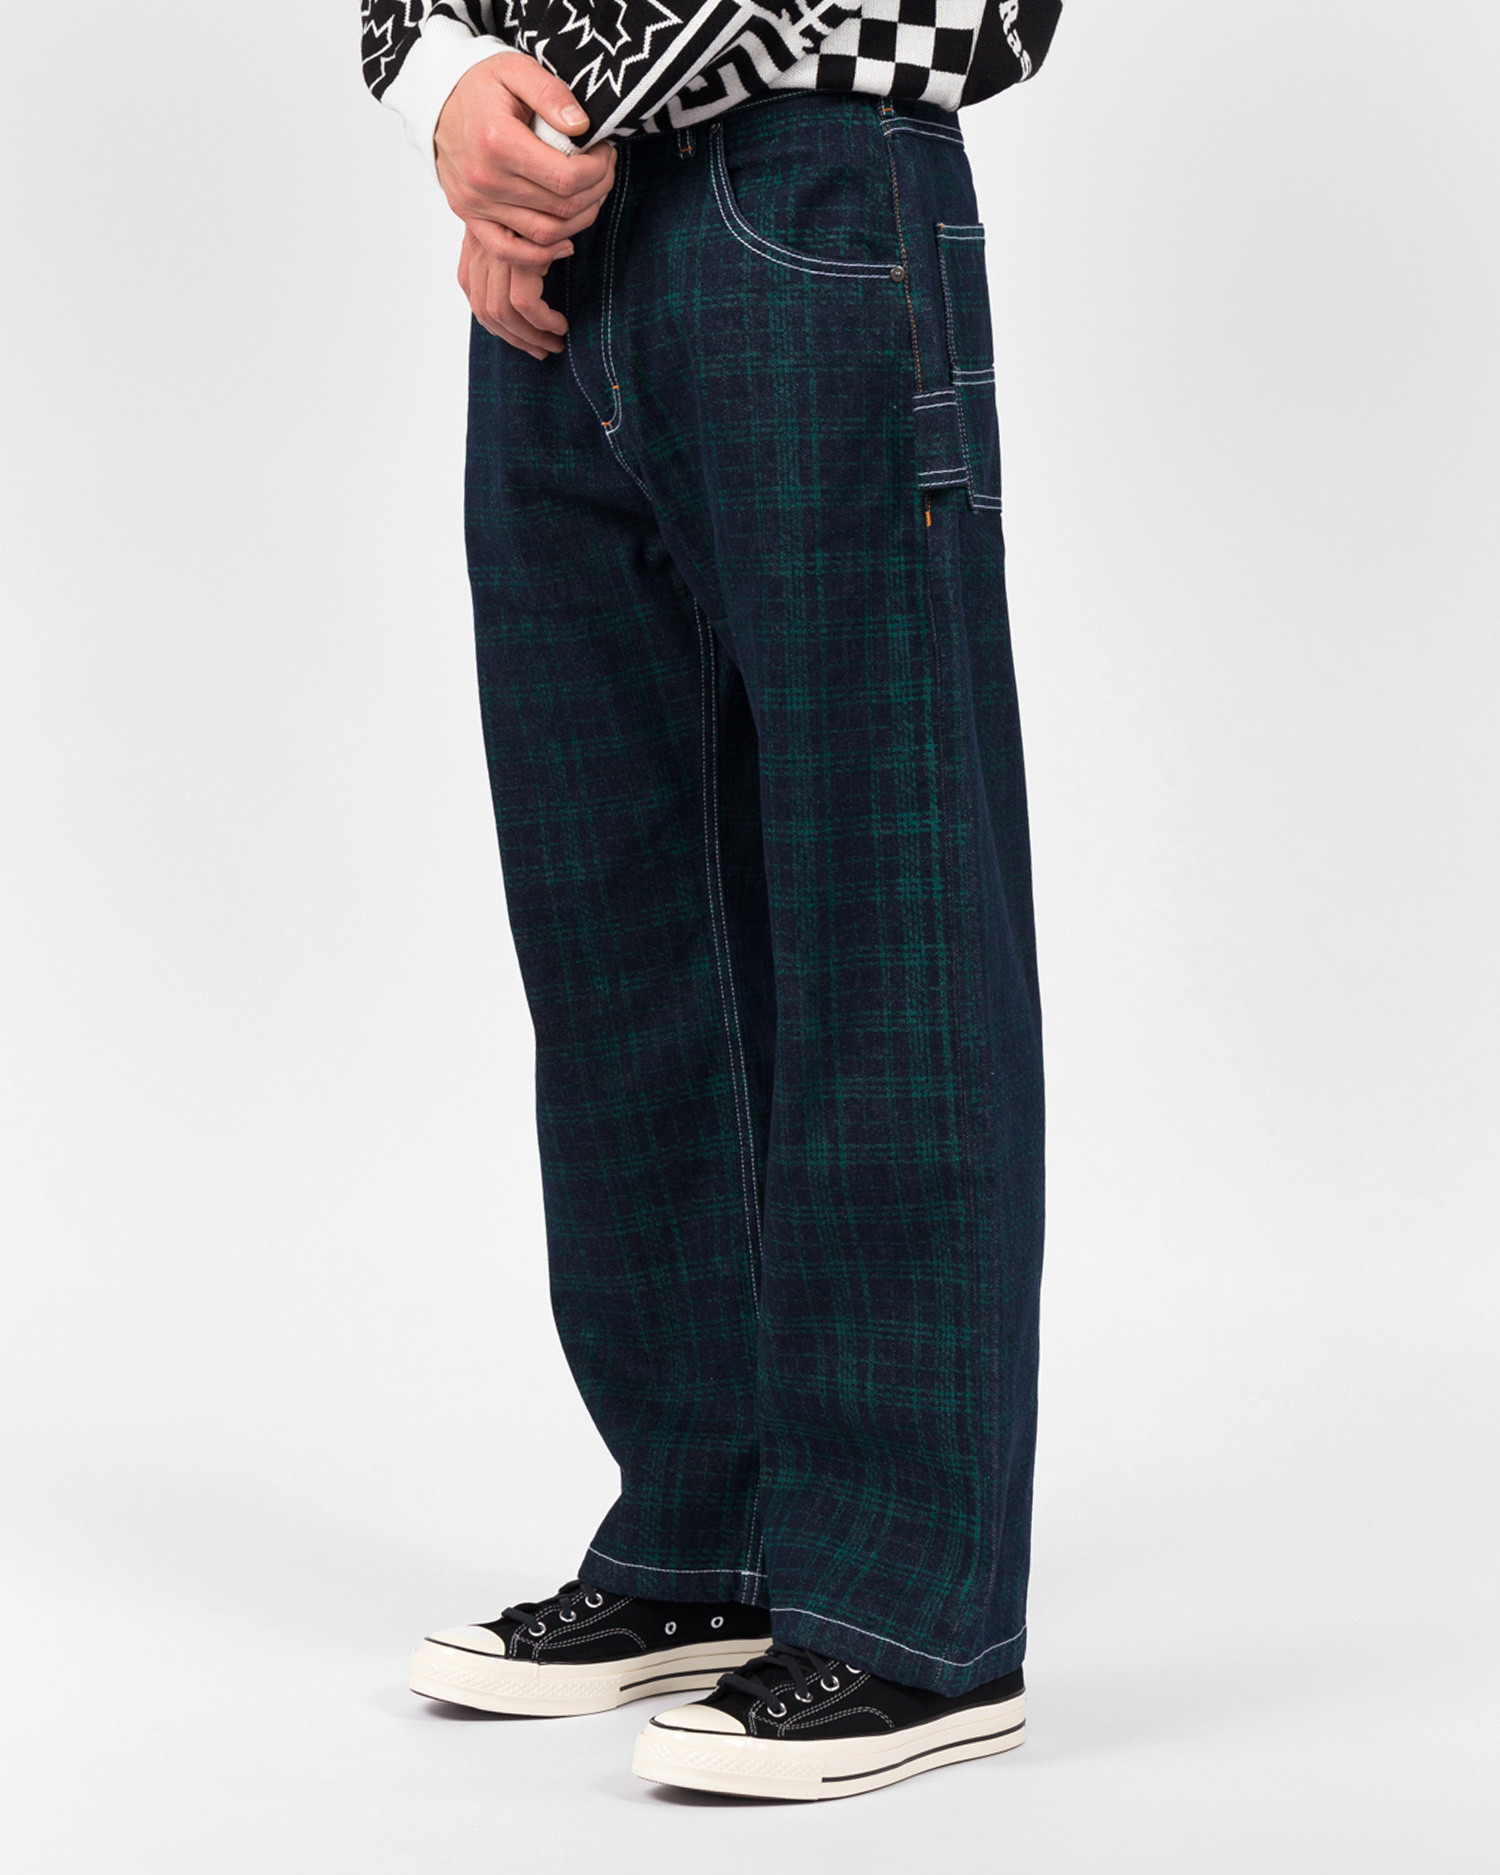 Paccbet Mens Jeans Green Checkered